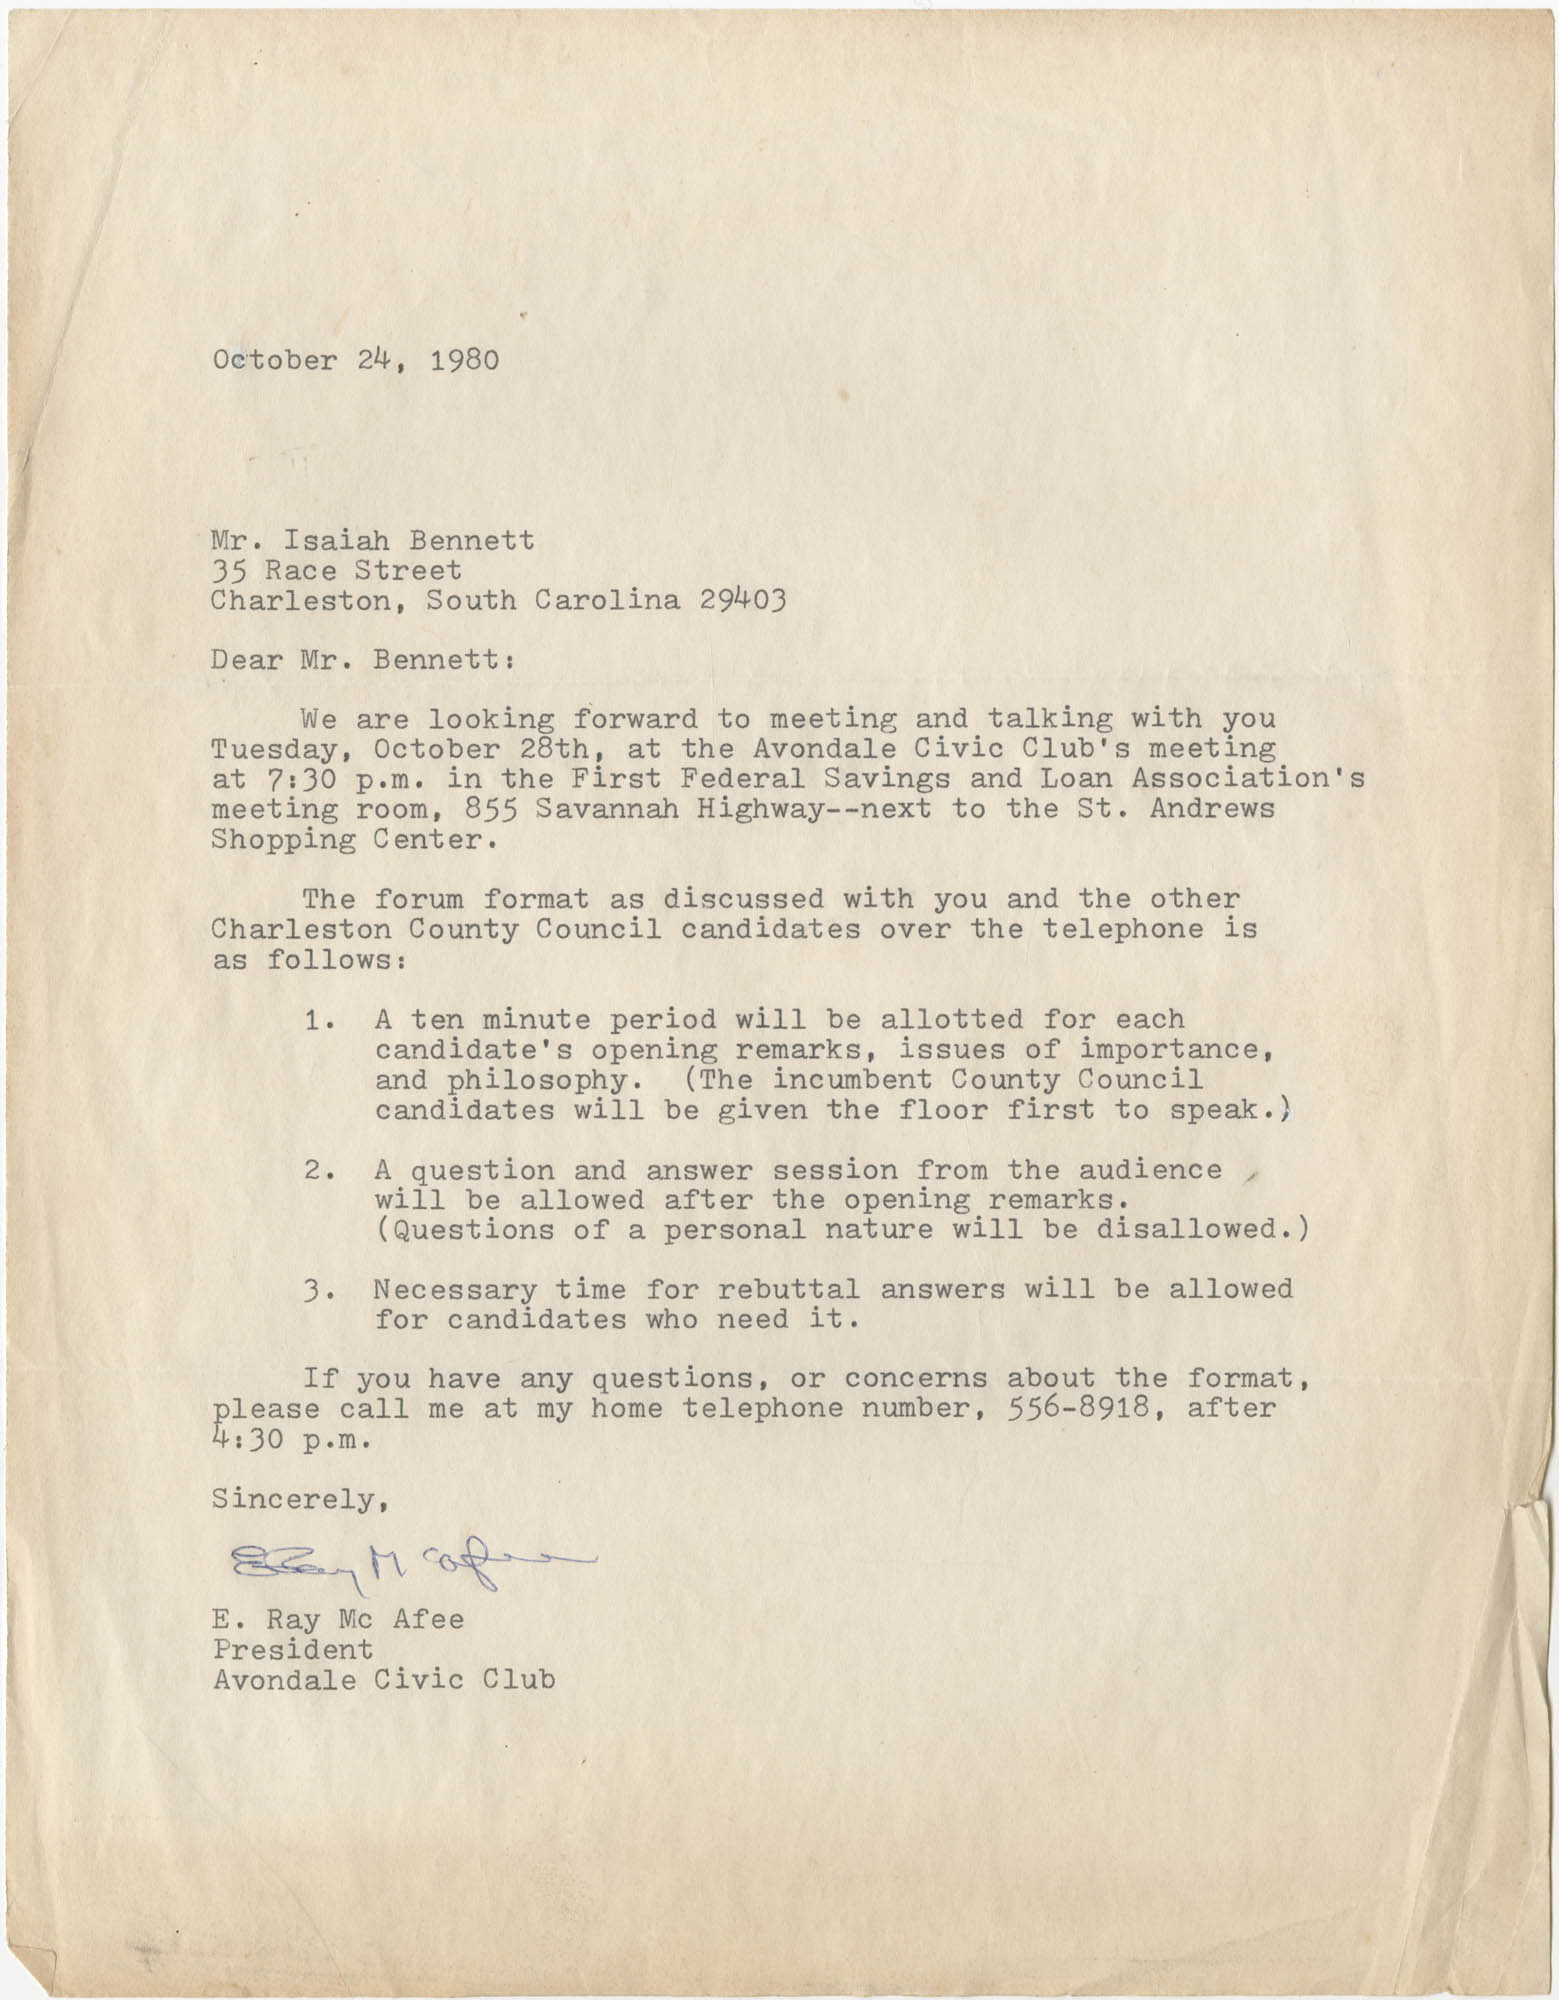 Letter from E. Ray McAfee to Isaiah Bennett, October 24, 1980